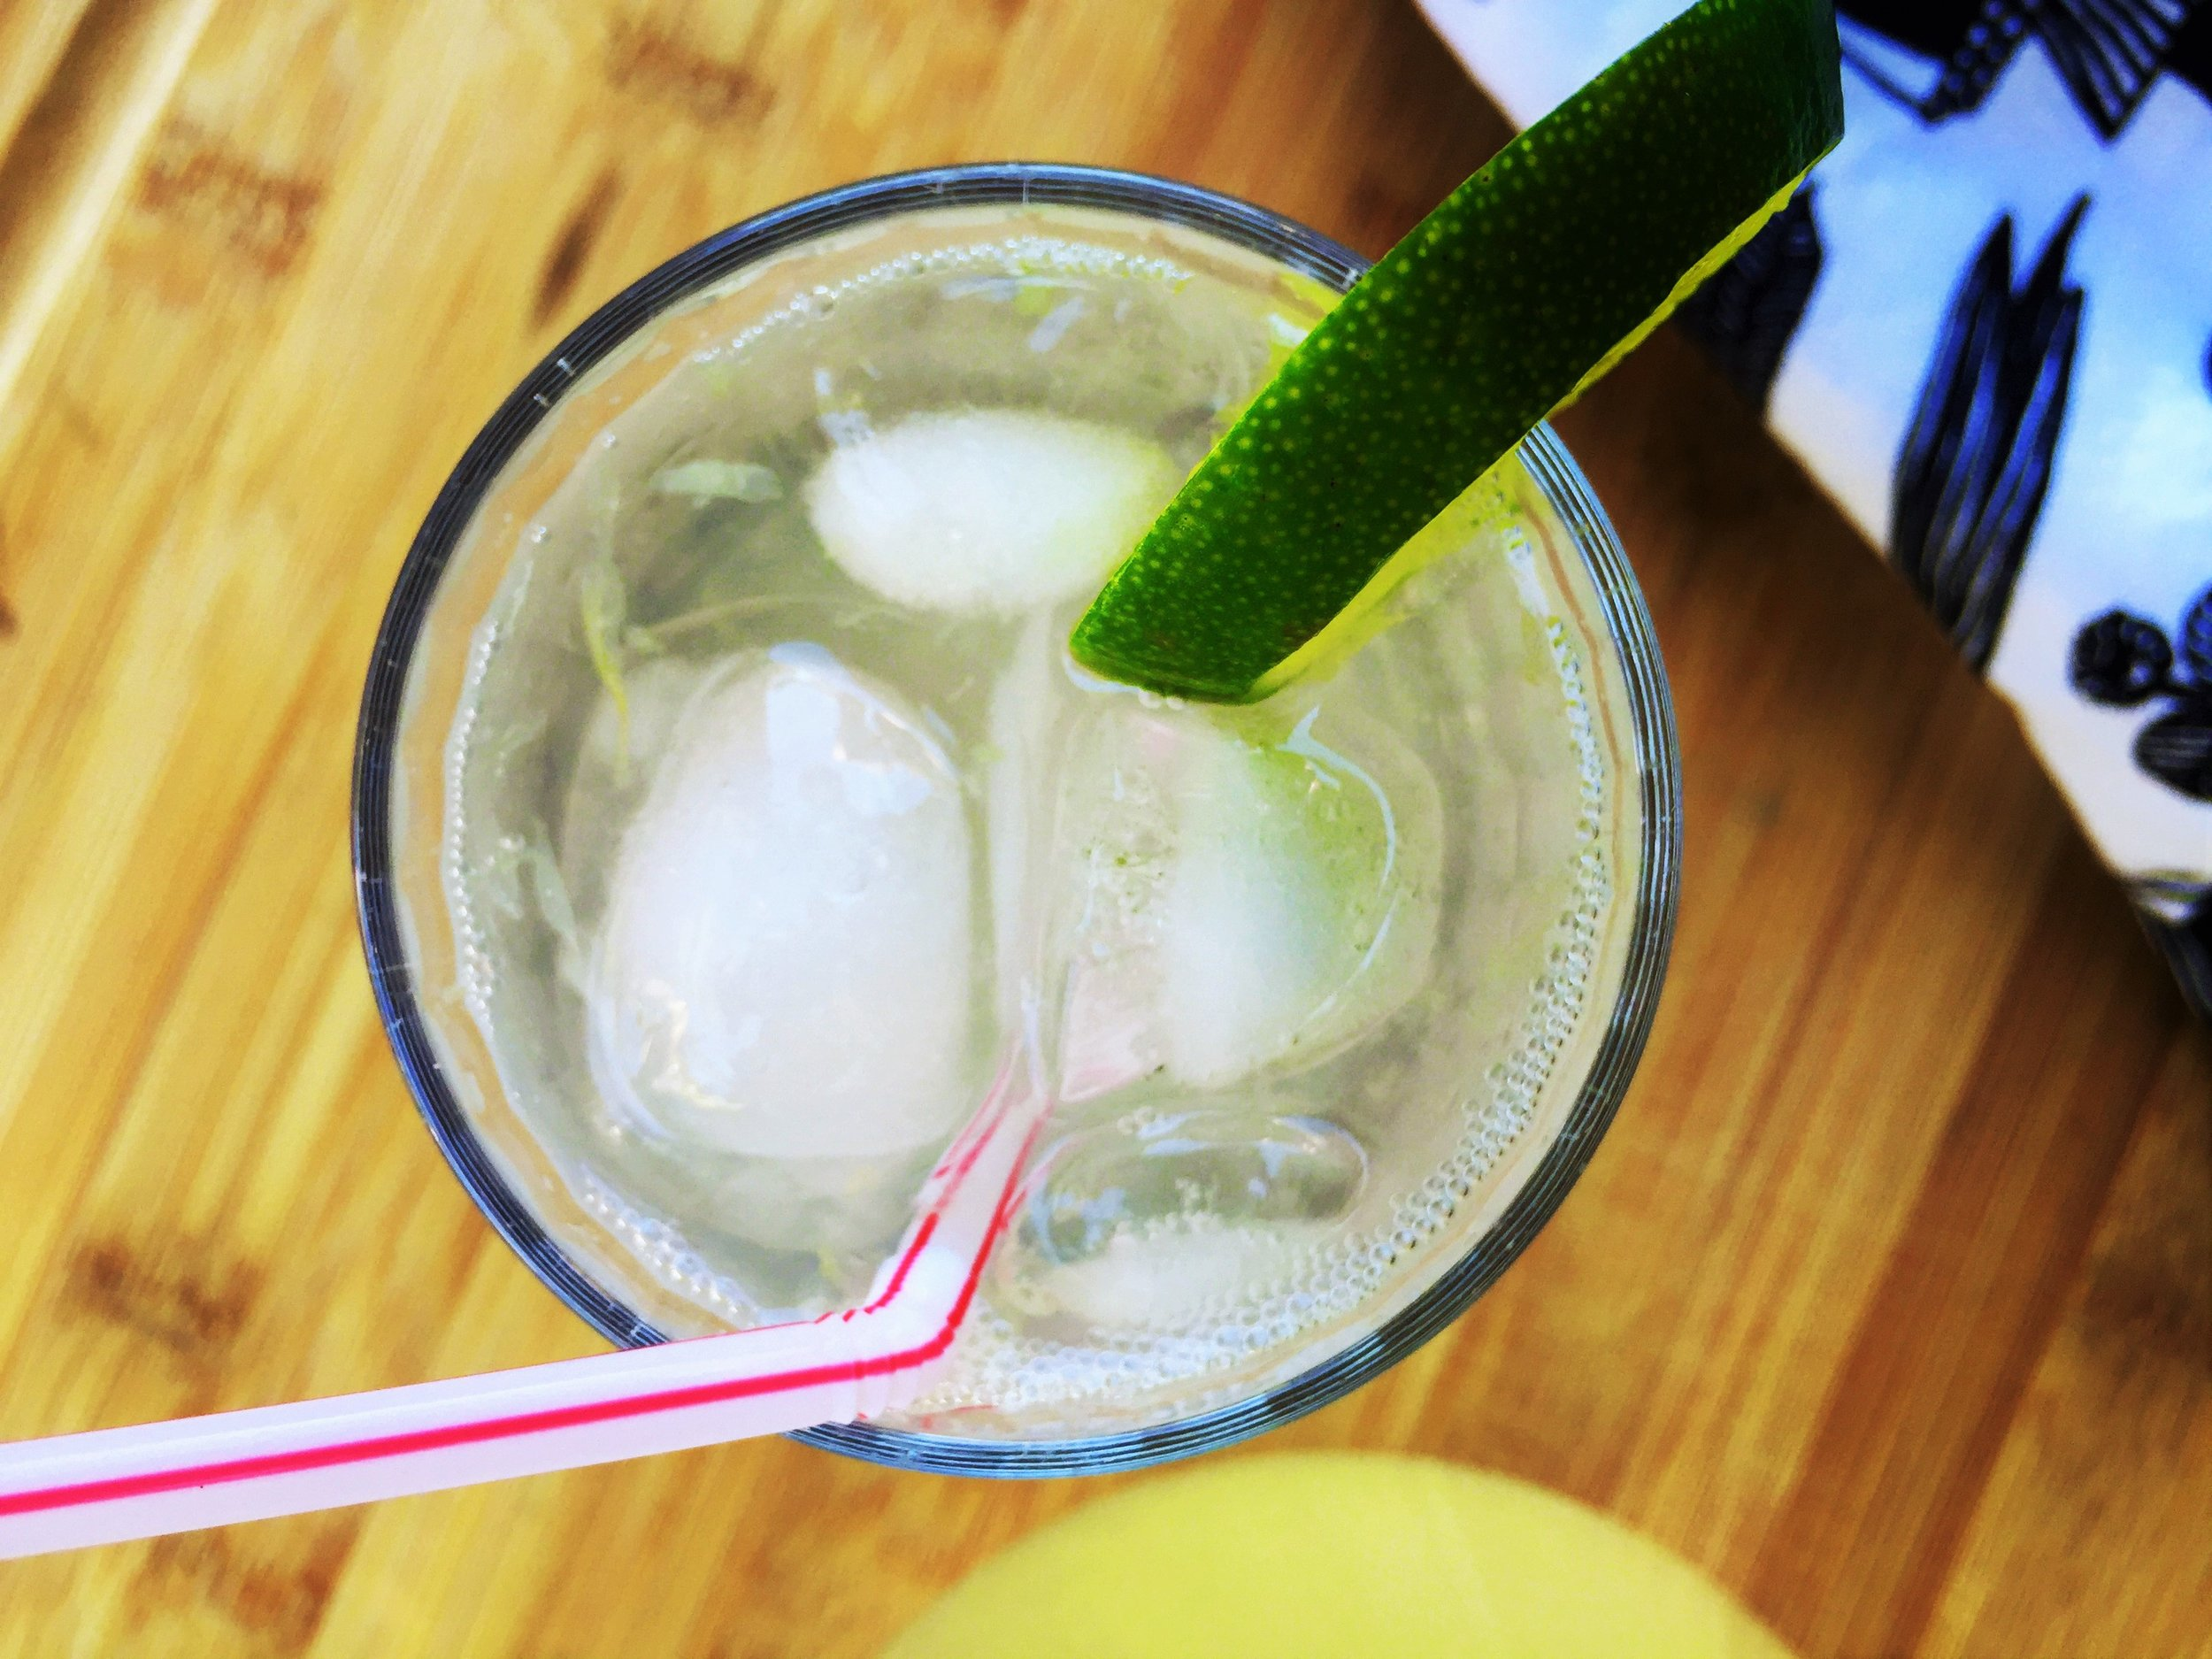 Fizzy Mint Limeade made in the Adventure Kitchen.